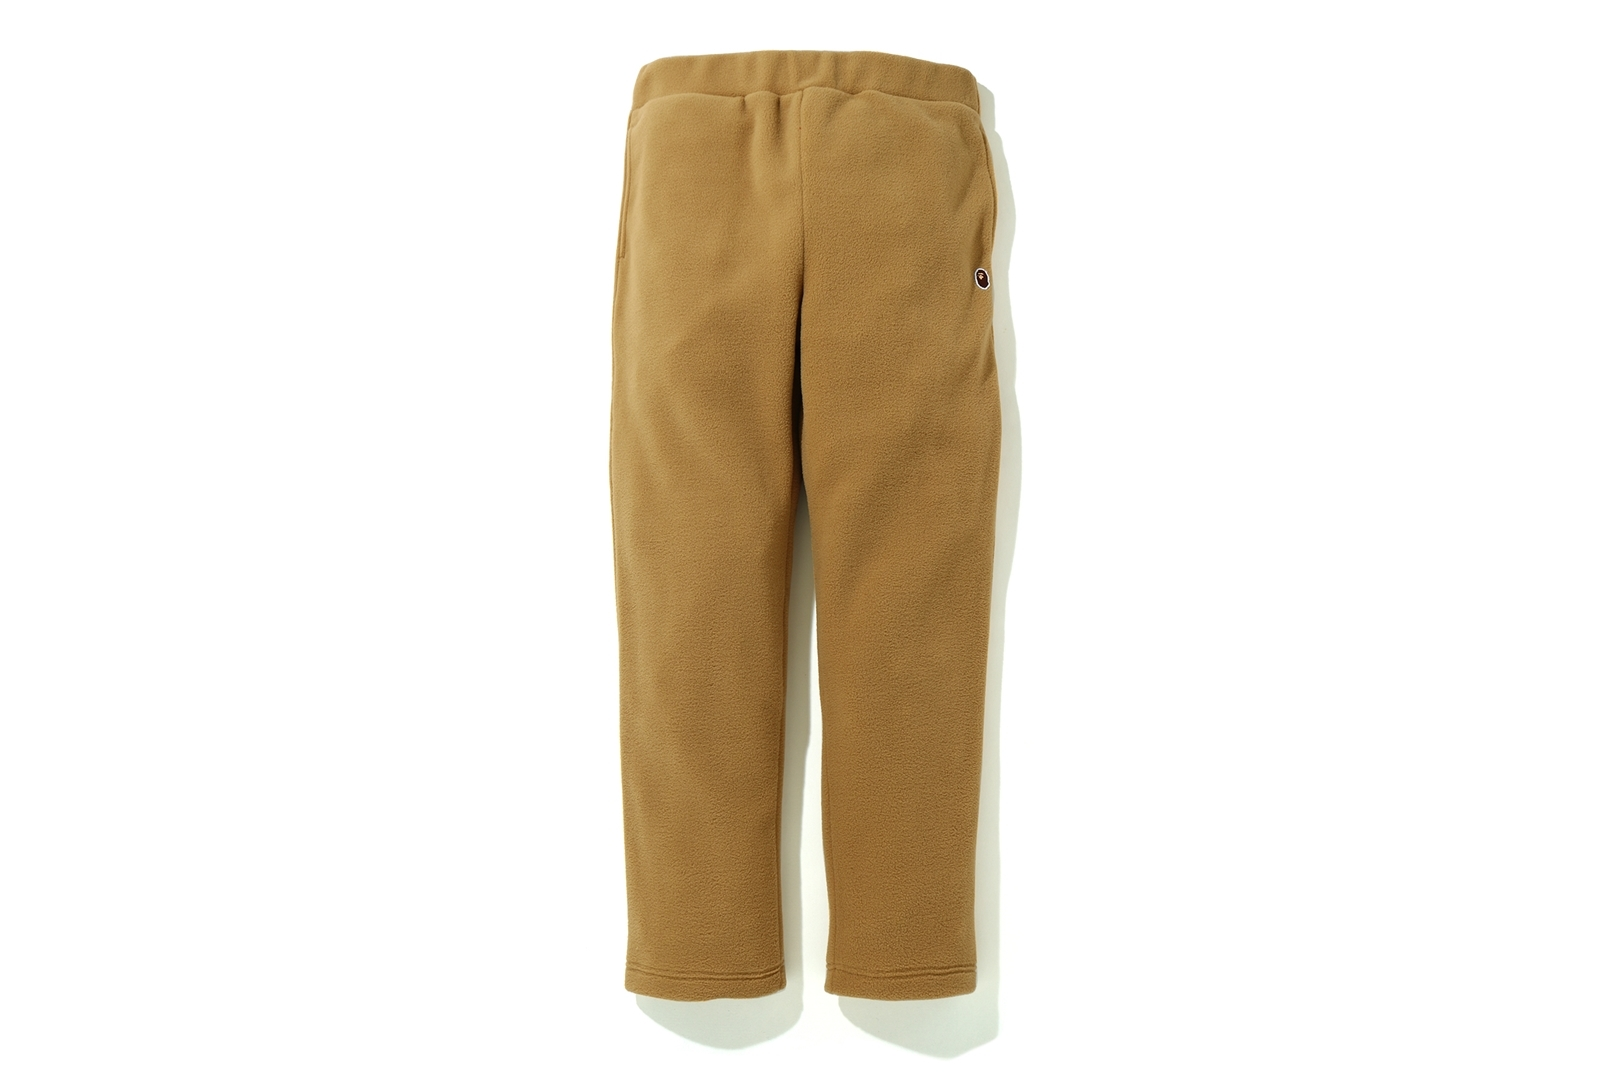 FLEECE ONE POINT PANTS_a0174495_17105624.jpg